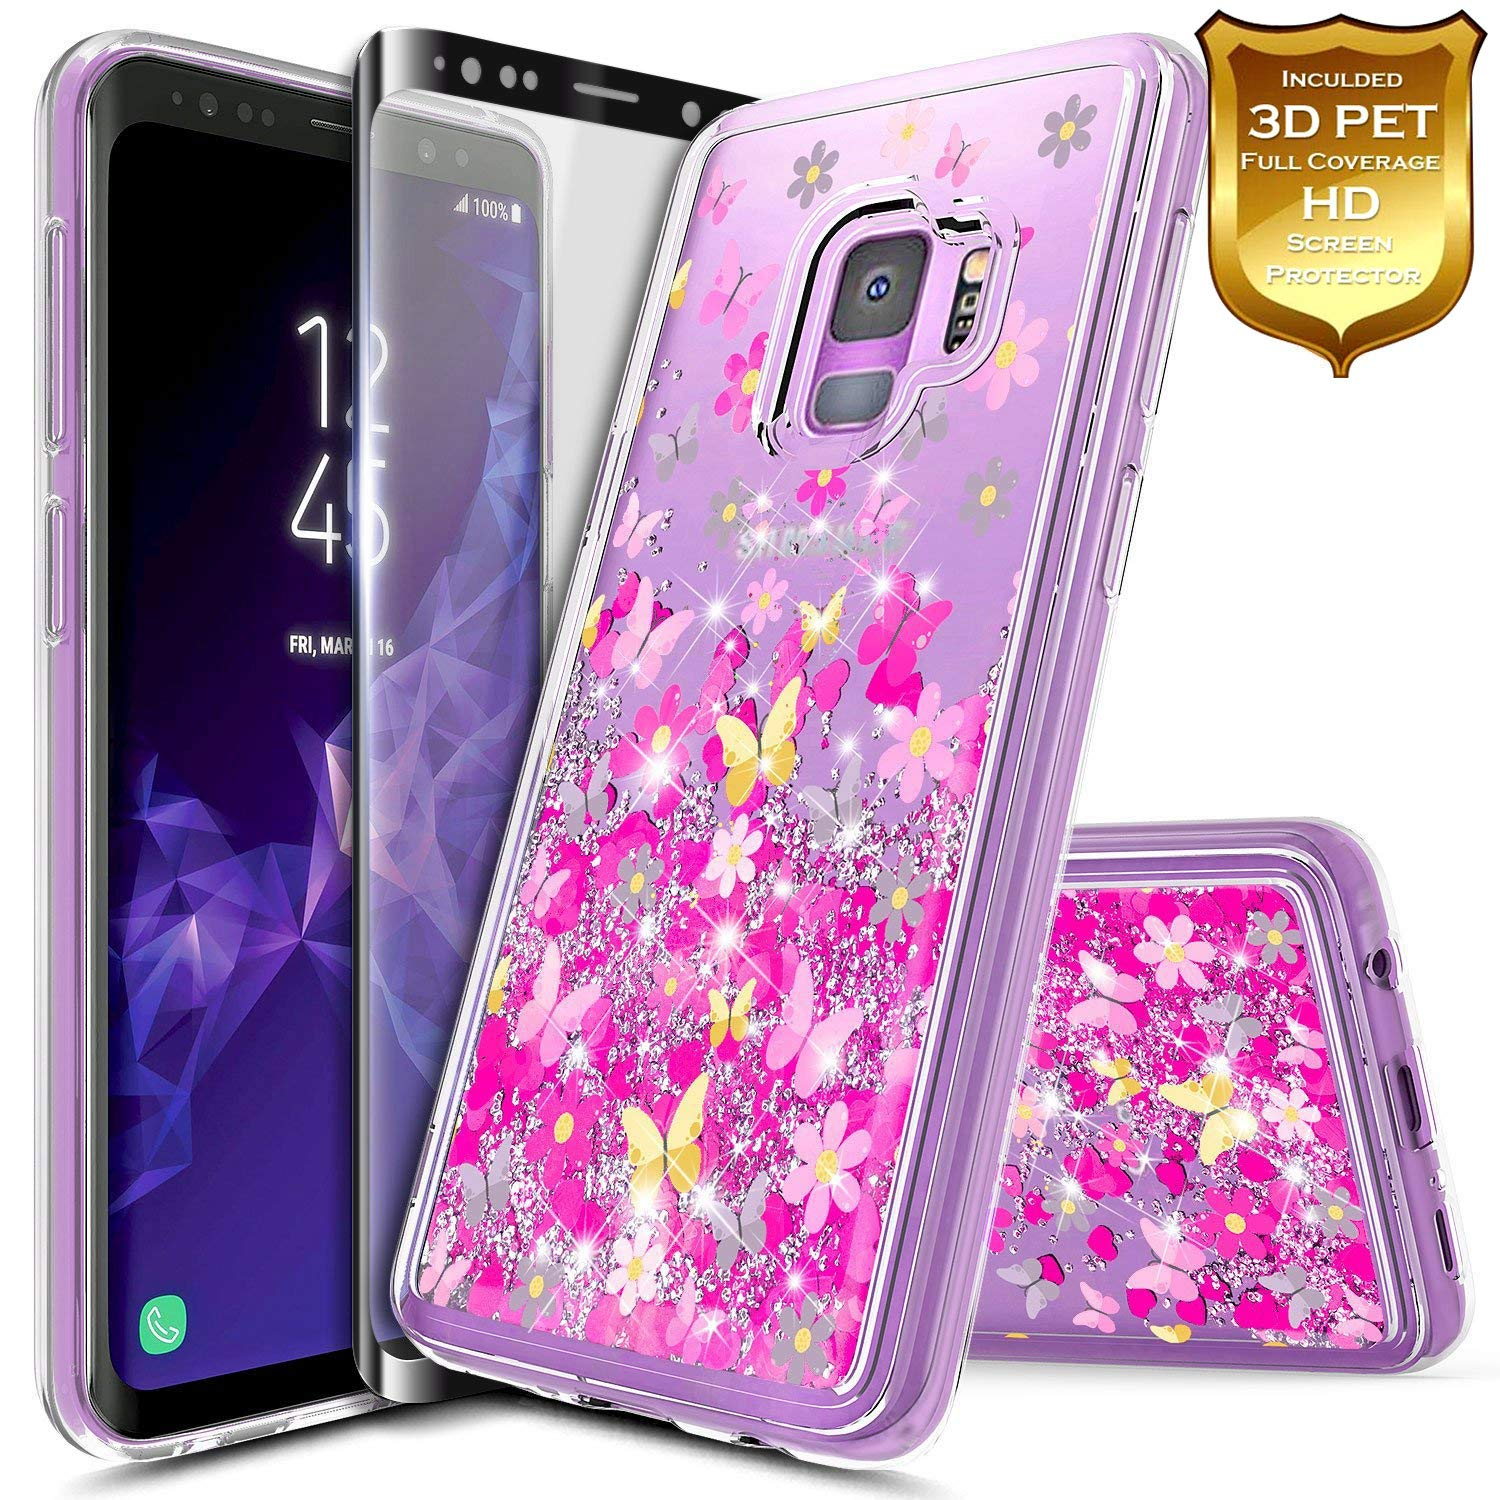 Galaxy S9 Case w/[Full Coverage Screen Protector Premium Clear], NageBee Glitter Liquid Quicksand Waterfall Flowing Sparkle Bling Diamond Girls Cute Case Designed for Samsung Galaxy S9 -Purple/Blue NGBS9LSZL